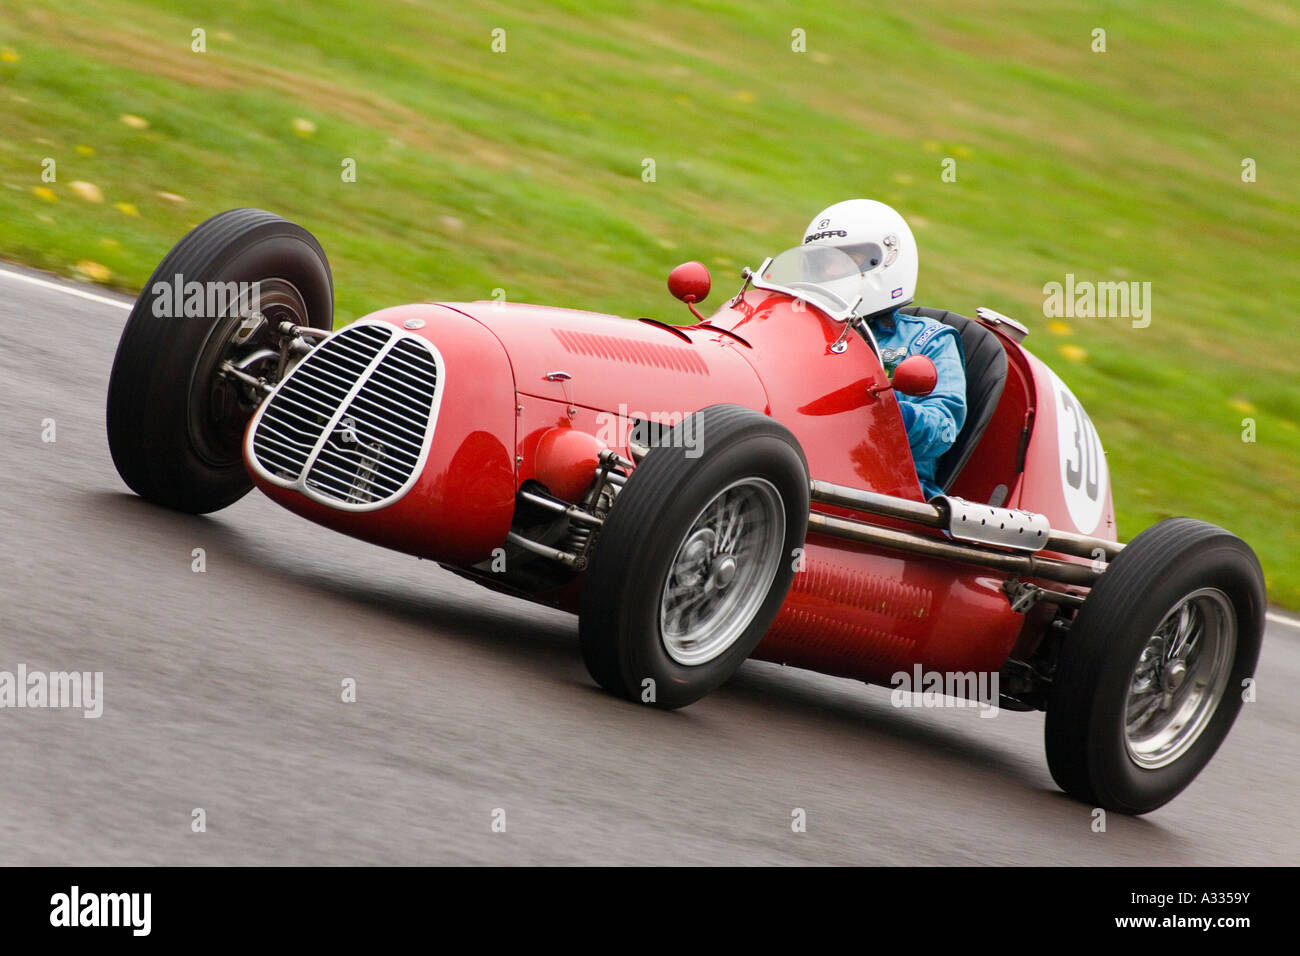 during the Richmond Trophy race at Goodwood Revival, Sussex, England. - Stock Image